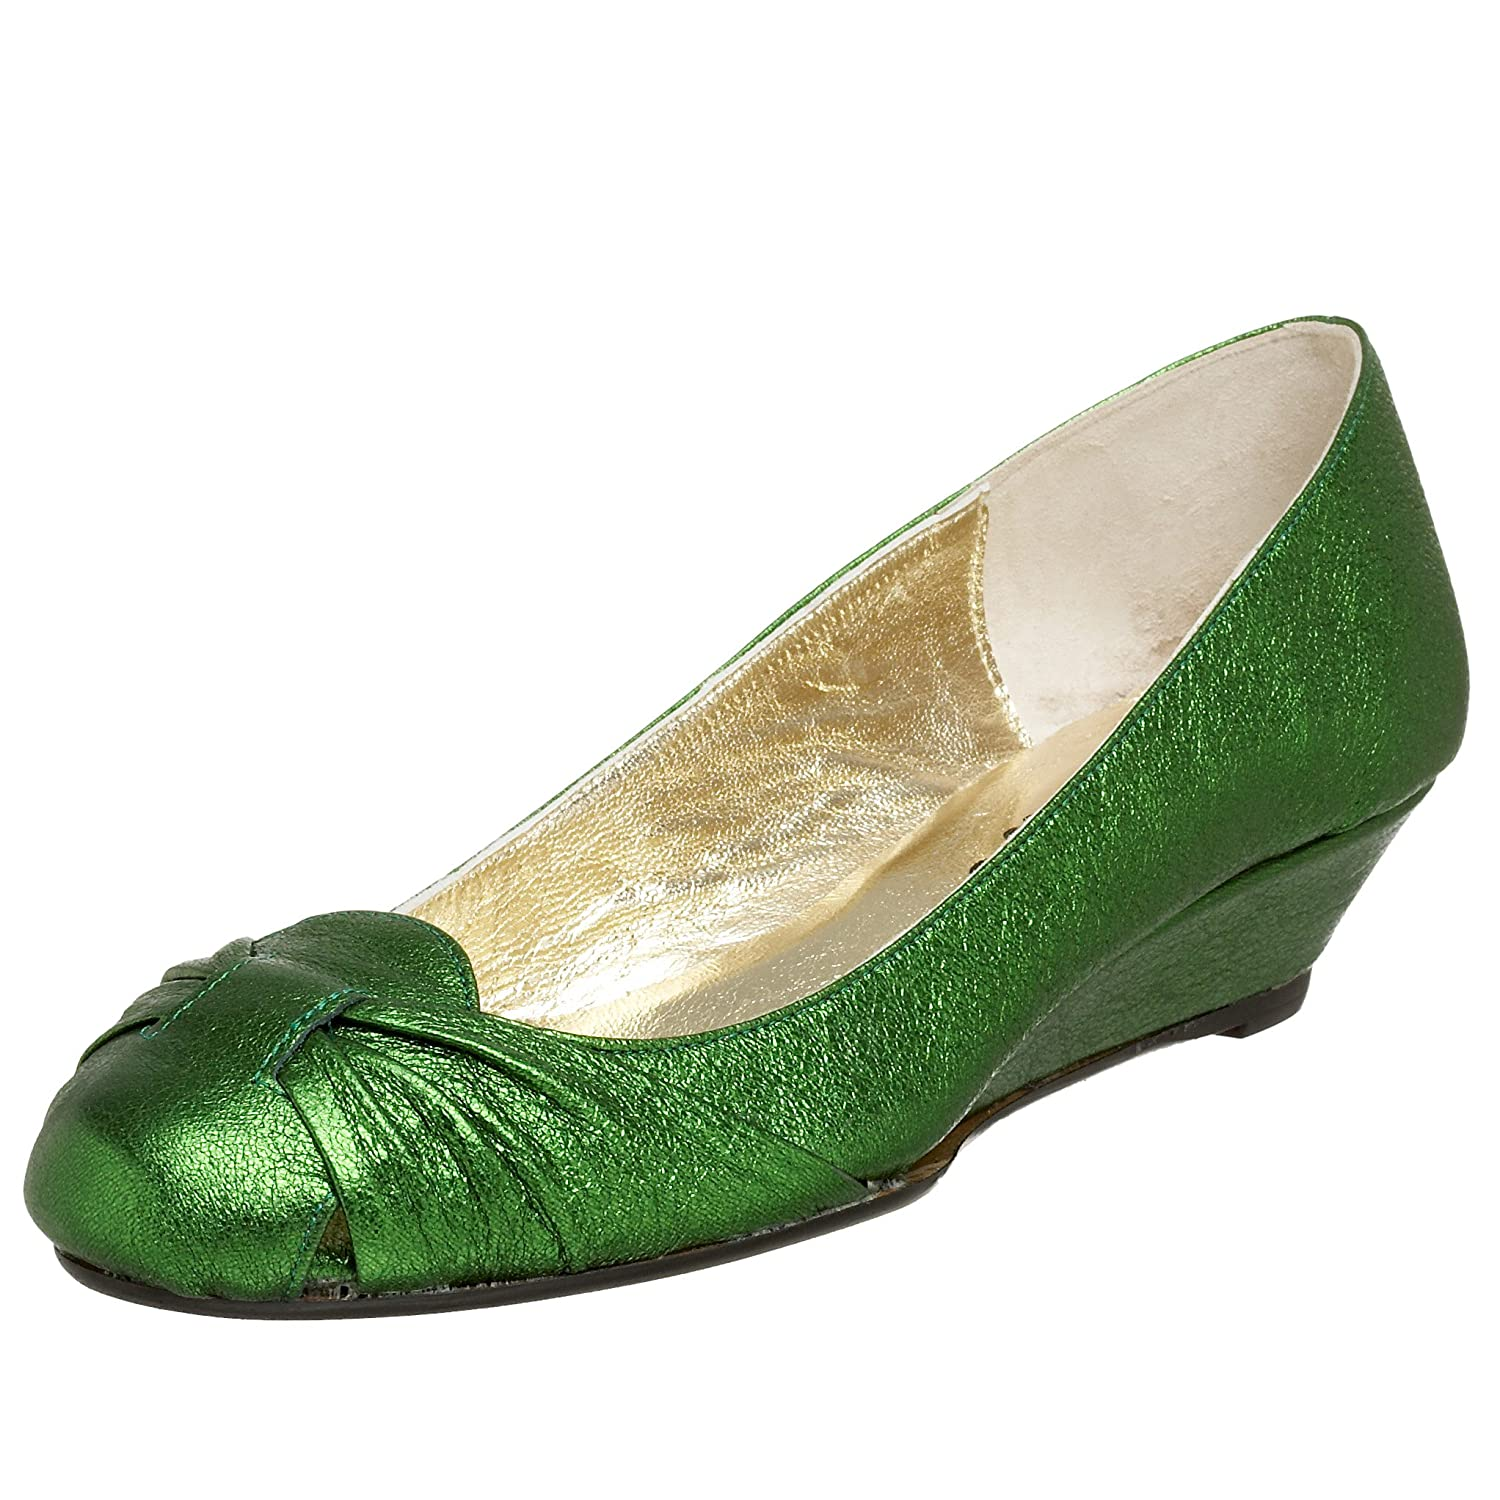 Butter Wildberry Ballet Flat - Free Overnight Shipping & Return Shipping: Endless.com from endless.com